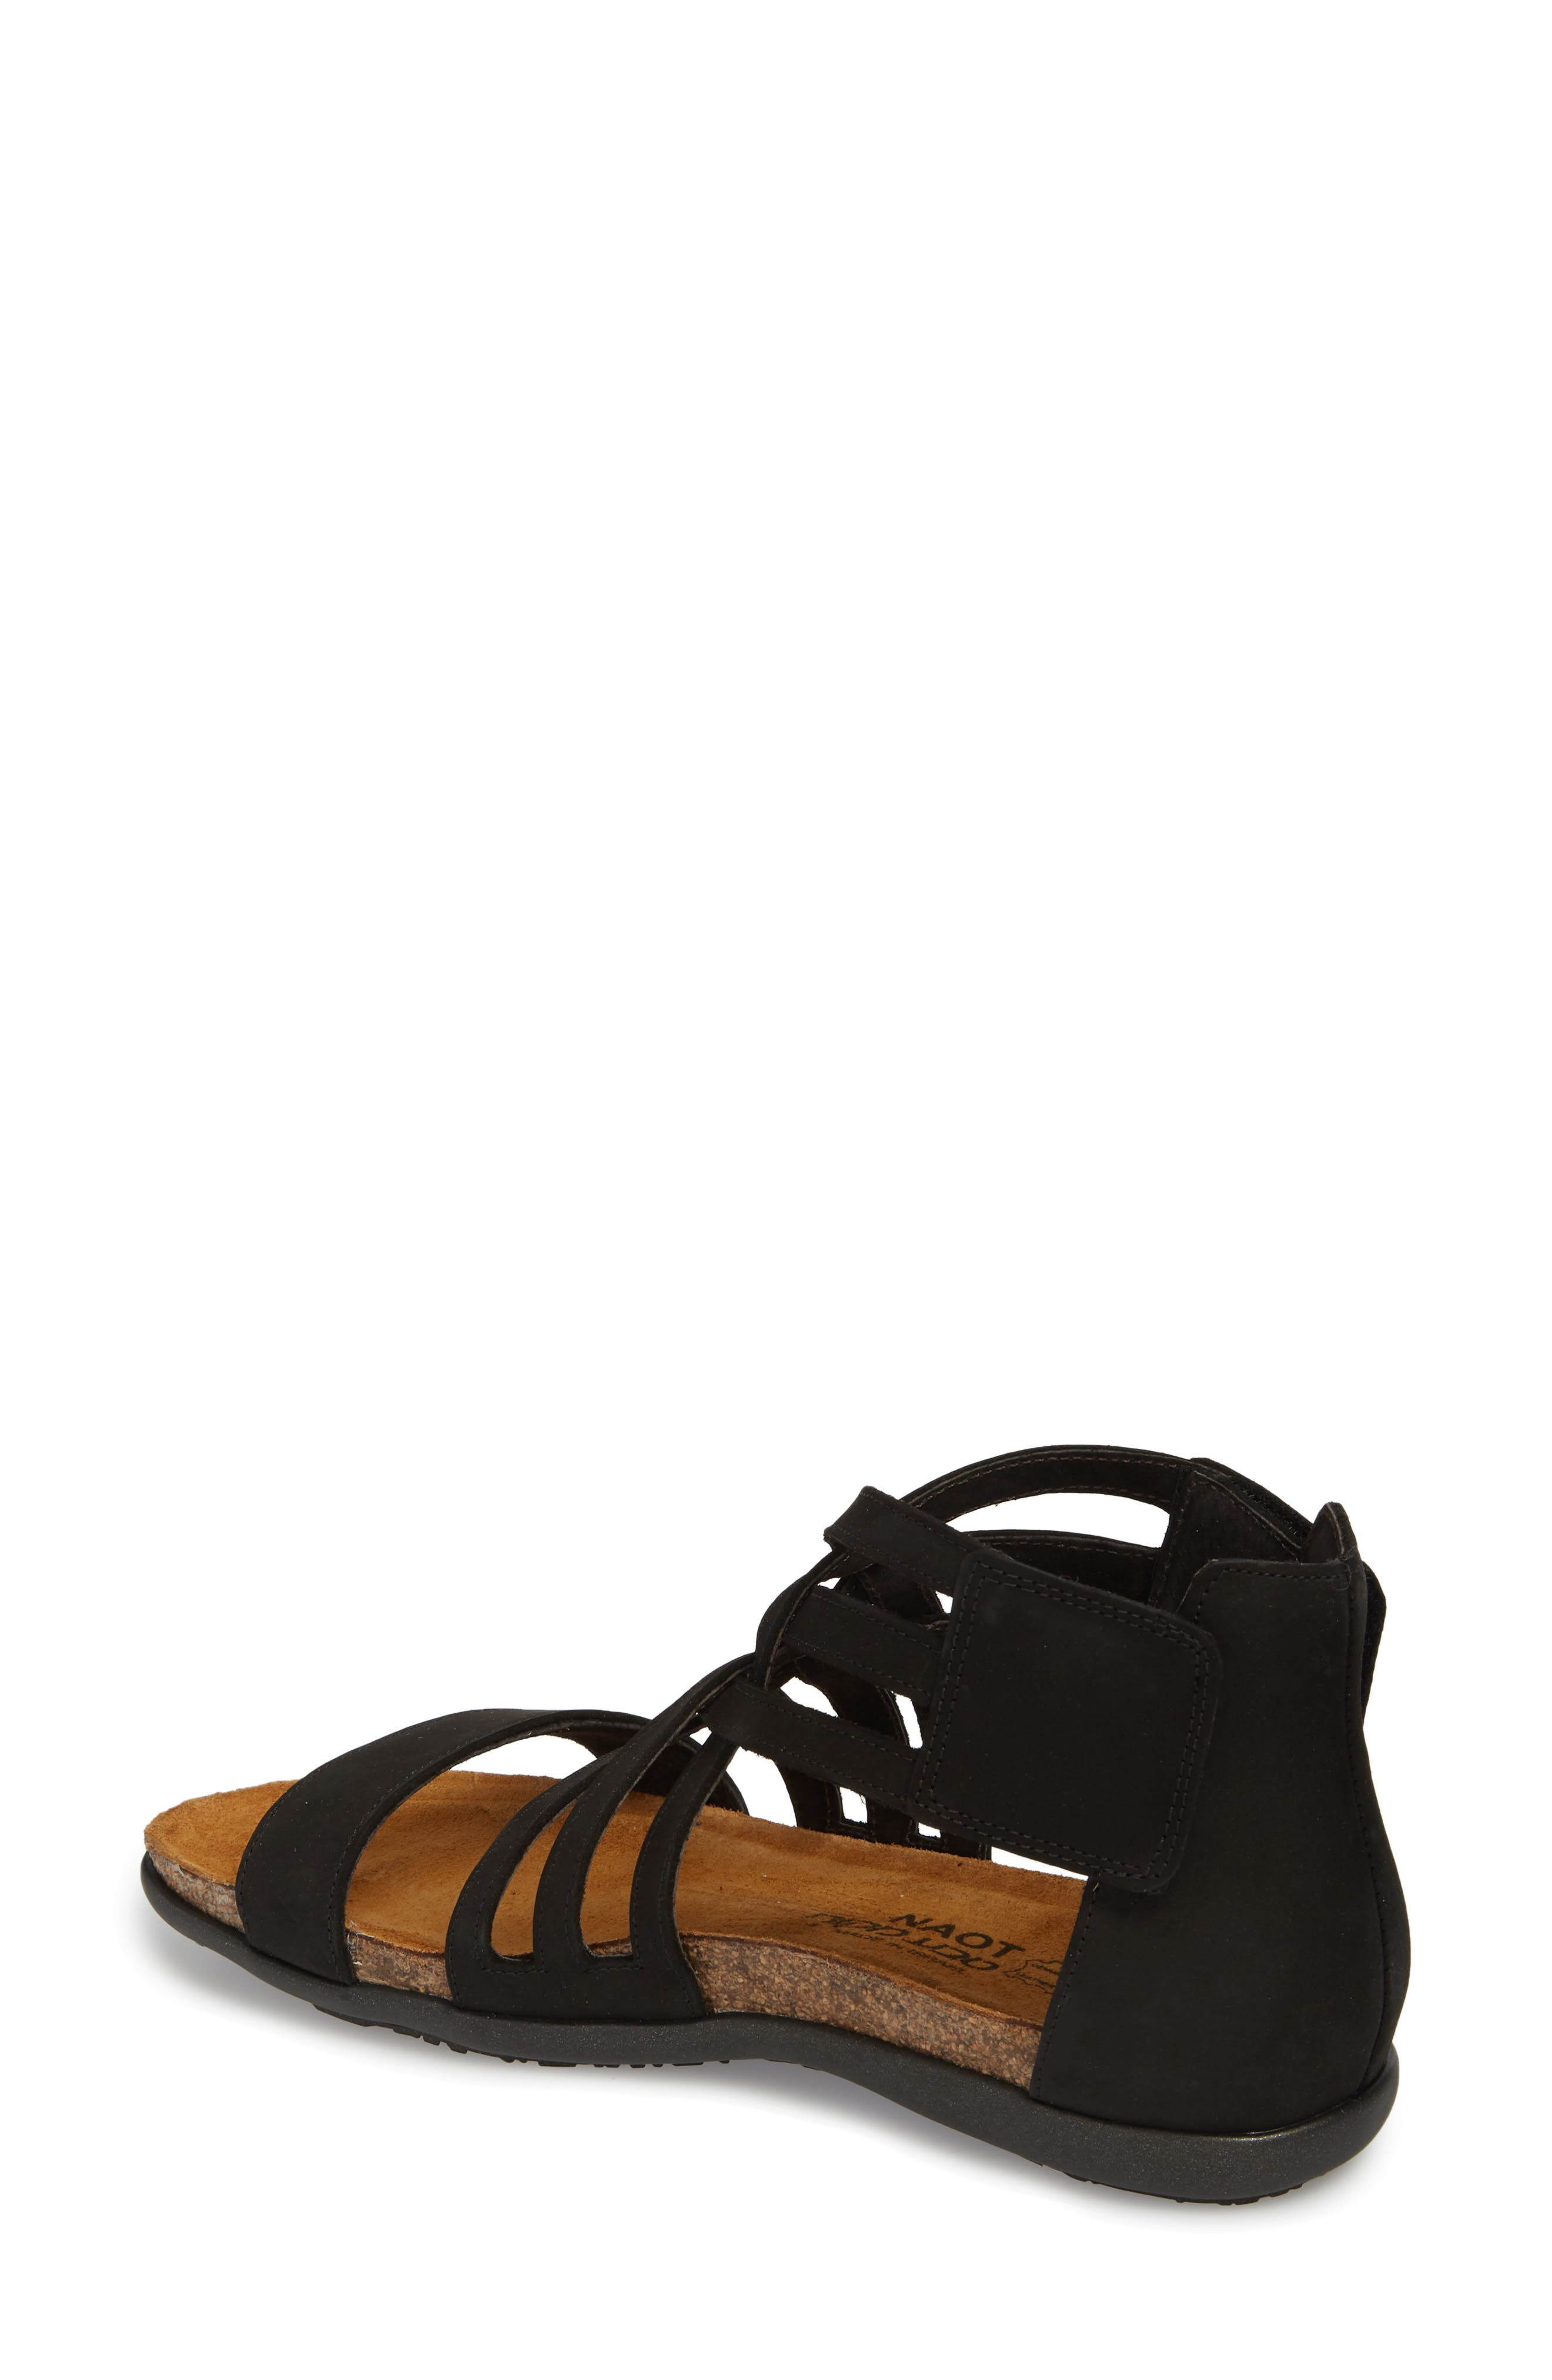 NAOT, Marita Sandal, Alternate thumbnail 2, color, BLACK VELVET NUBUCK